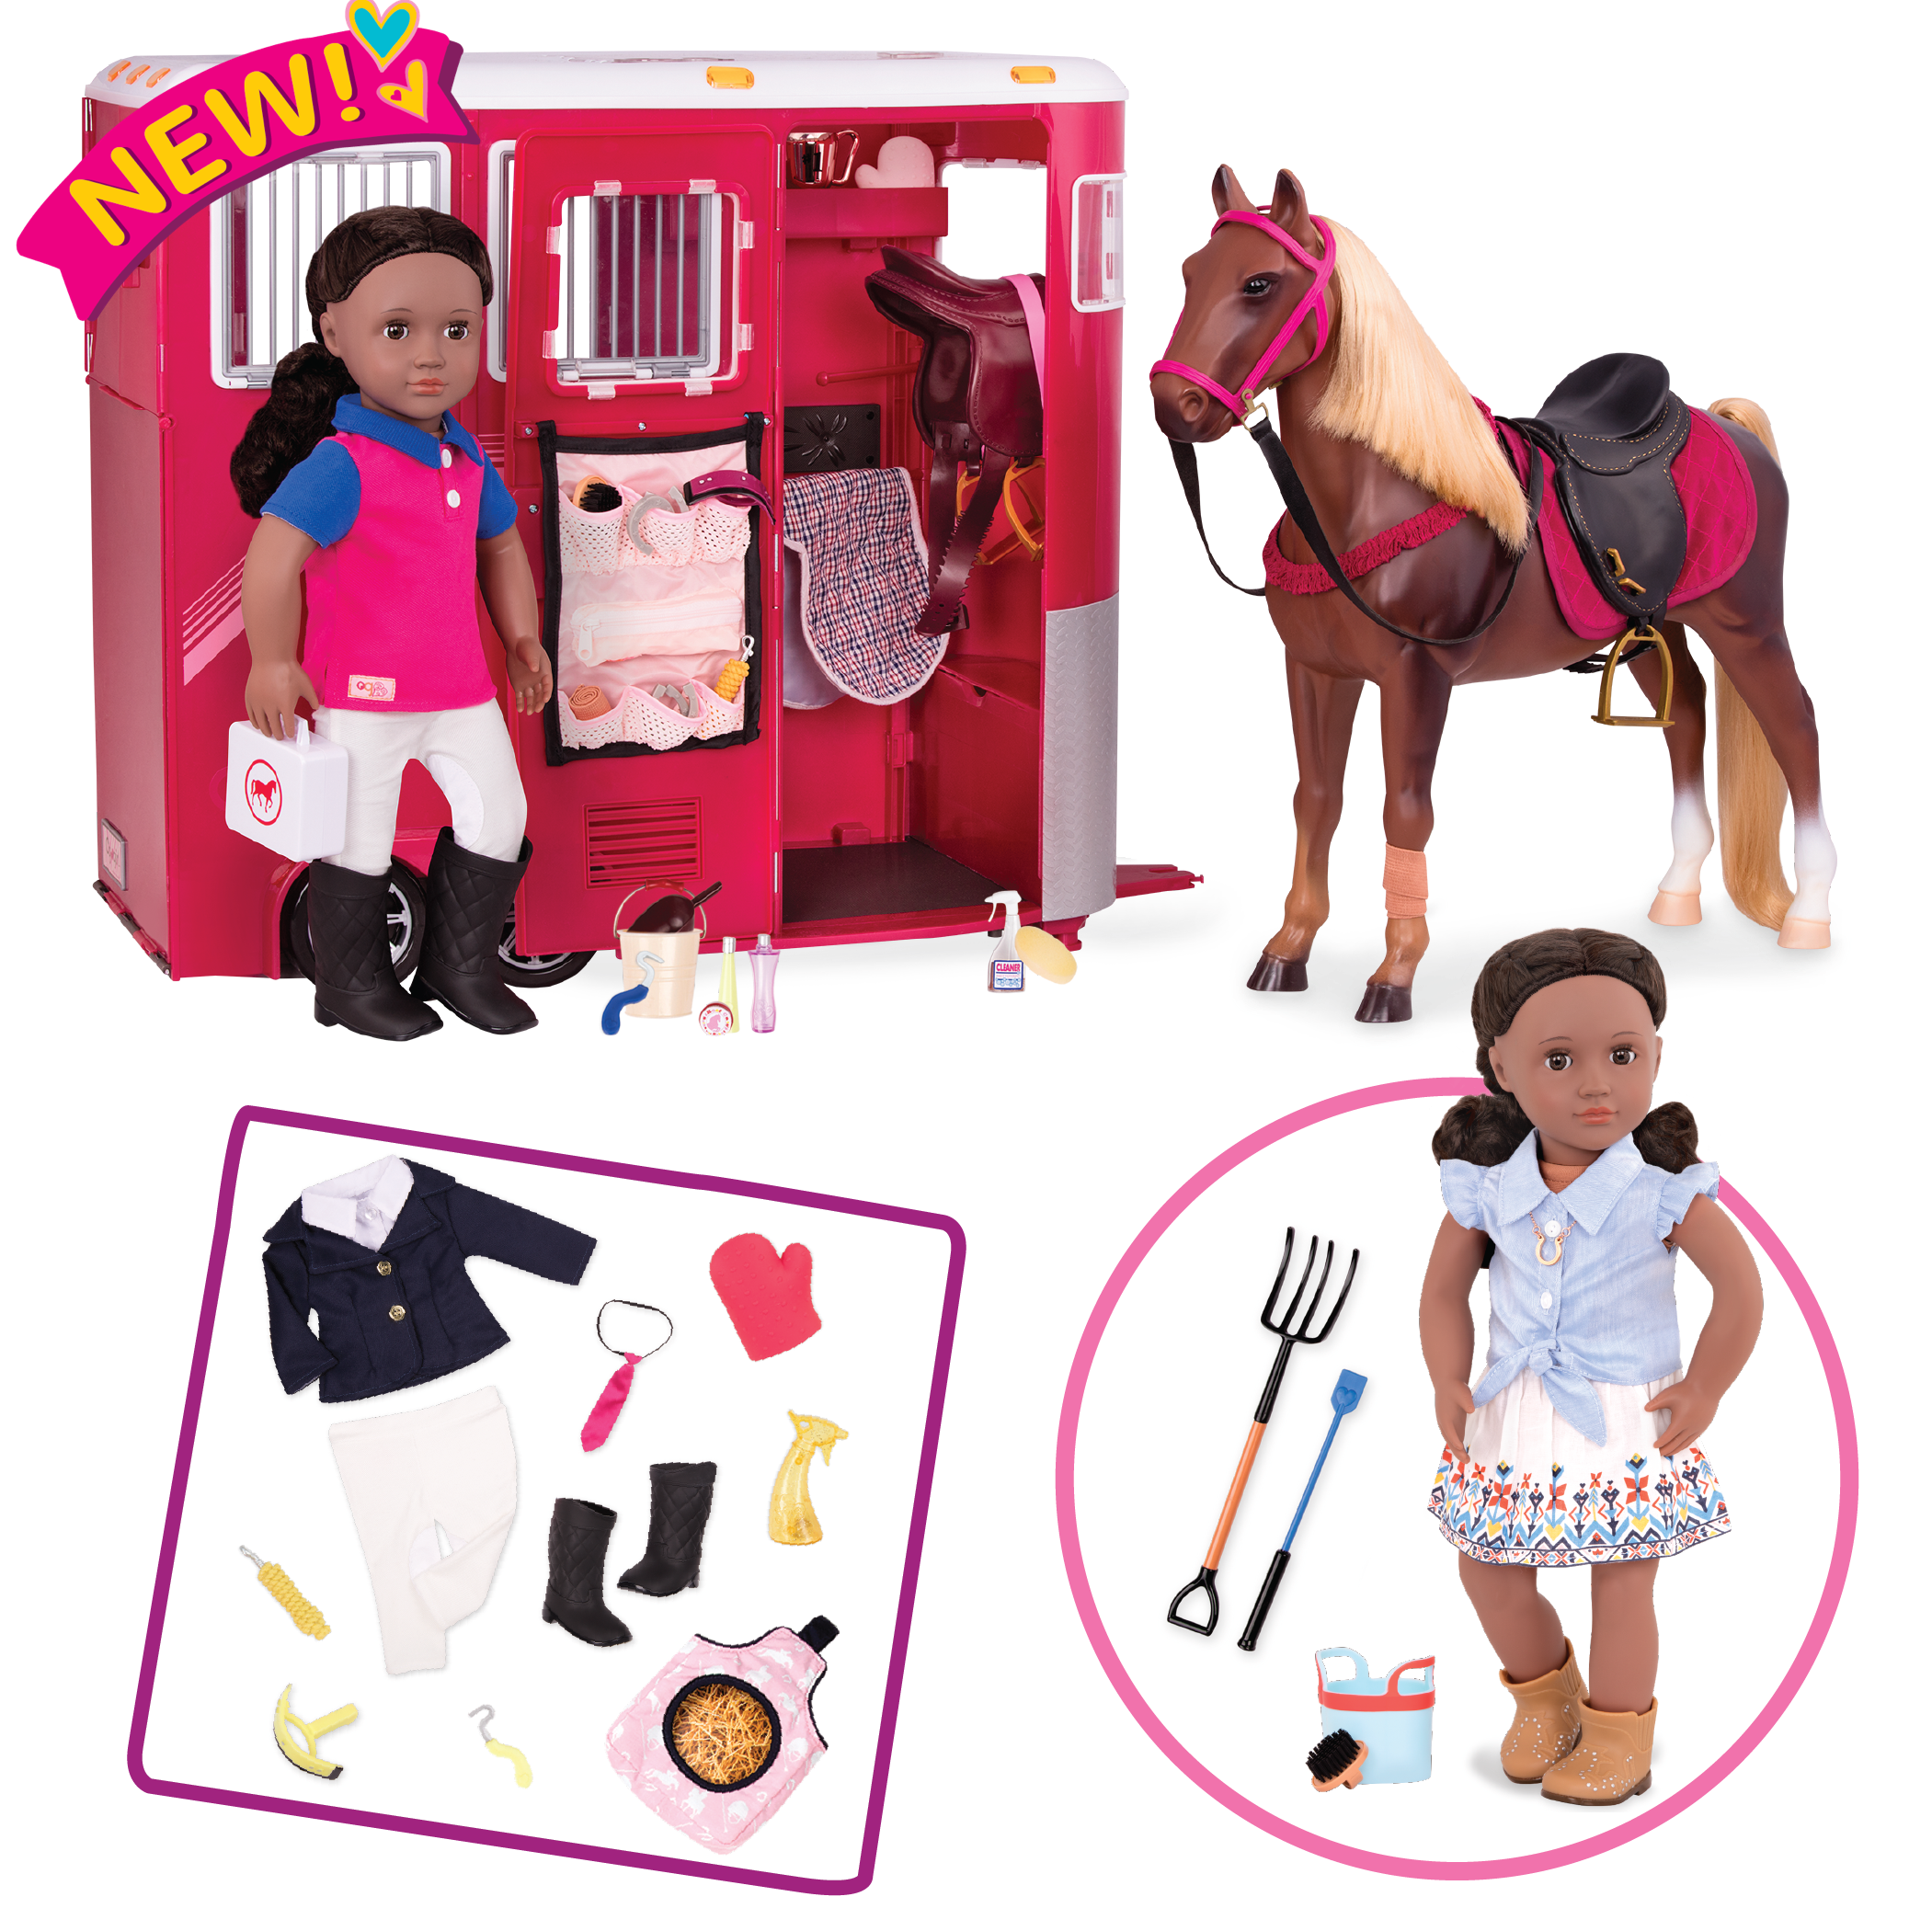 18-inch Doll riding set equestrian playset with horse trailer, horse, and posable doll